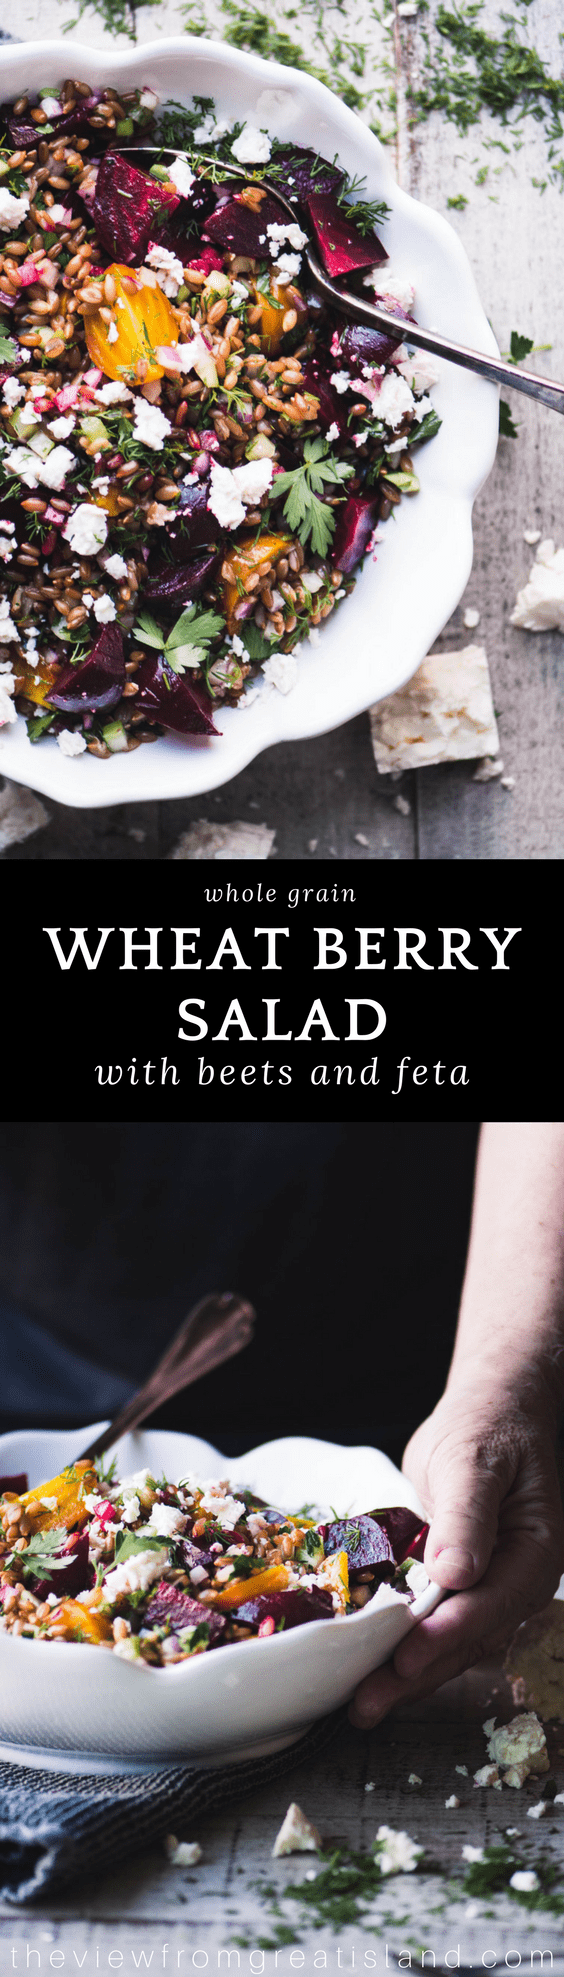 Wheat Berry Salad with Beets and Feta ~ this earthy whole grain salad is stunning enough for your holiday table, and don't be surprised if the carnivores in your group jump ship and join the vegetarians! #salad #wholegrains #wheatberries #grainsalad #sidedish #Thanksgiving #vegetarian #vegan #Whole30 #Thanksgivingsidedish #Thanksgivingsalad #beets #healthy #wintersalad #highfiber #protein #farro #spelt #emmer #frekkah